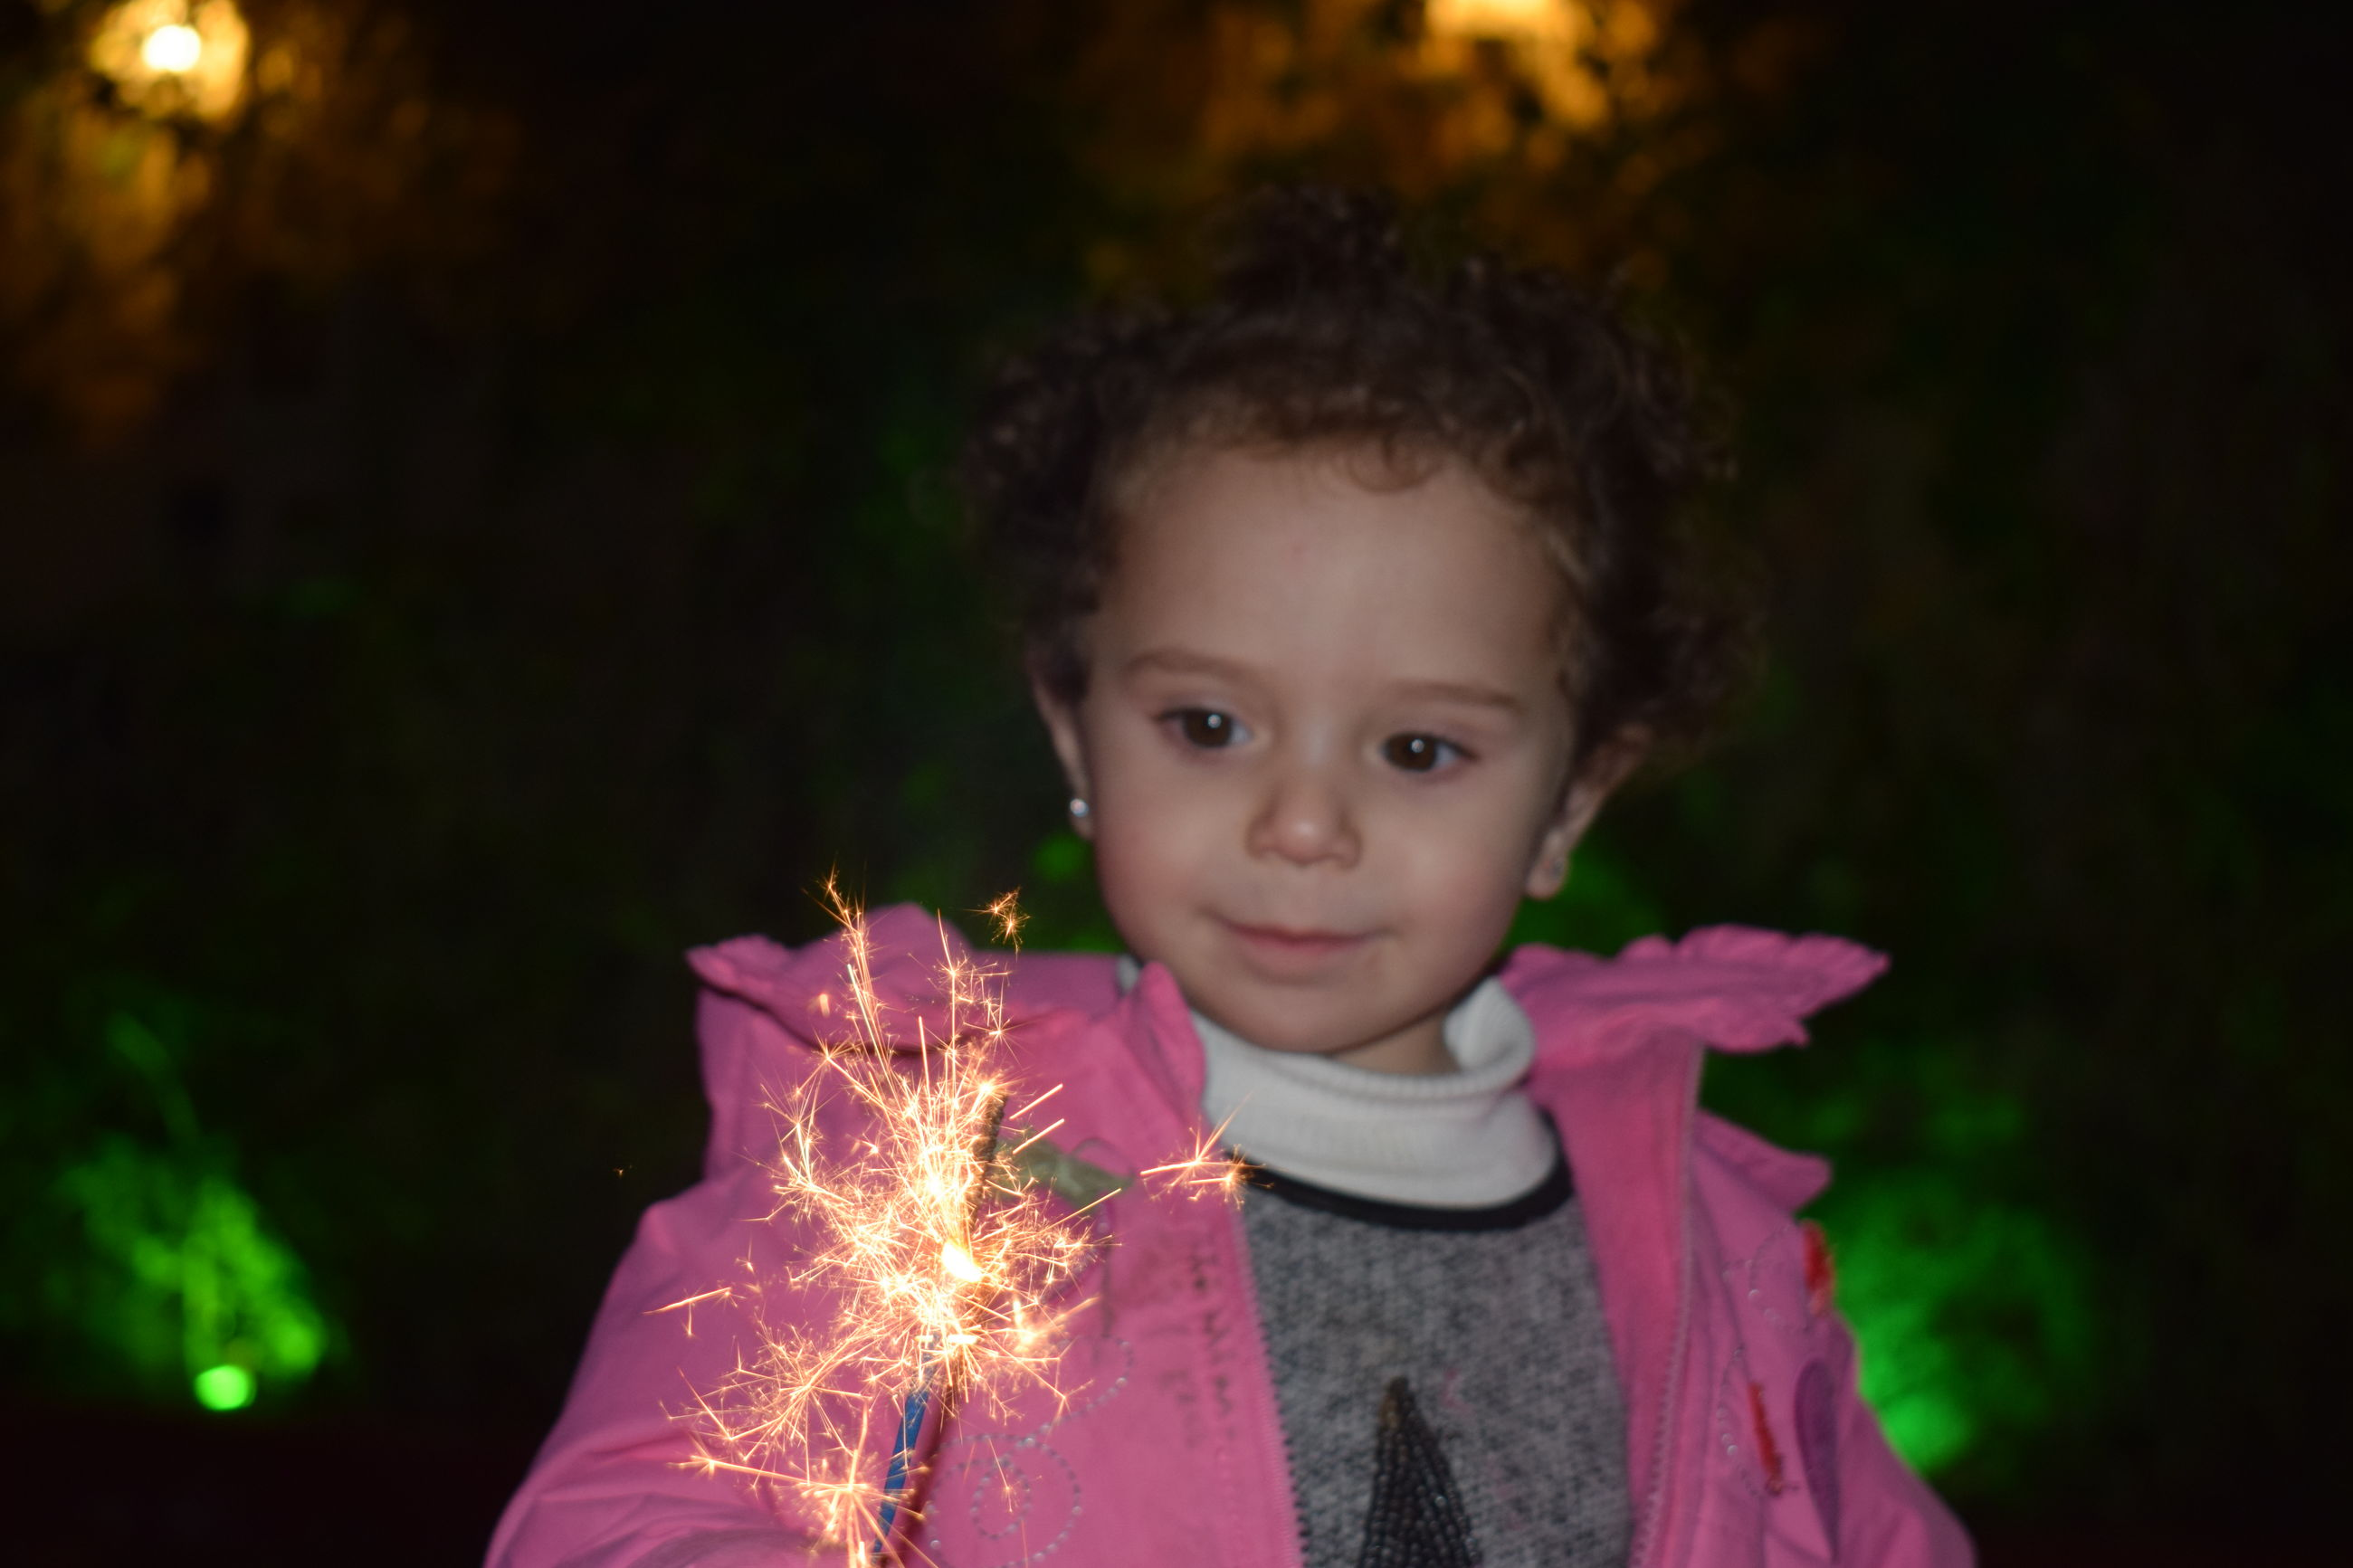 real people, childhood, one person, innocence, looking at camera, portrait, lifestyles, leisure activity, focus on foreground, night, headshot, sparkler, holding, outdoors, close-up, human hand, people